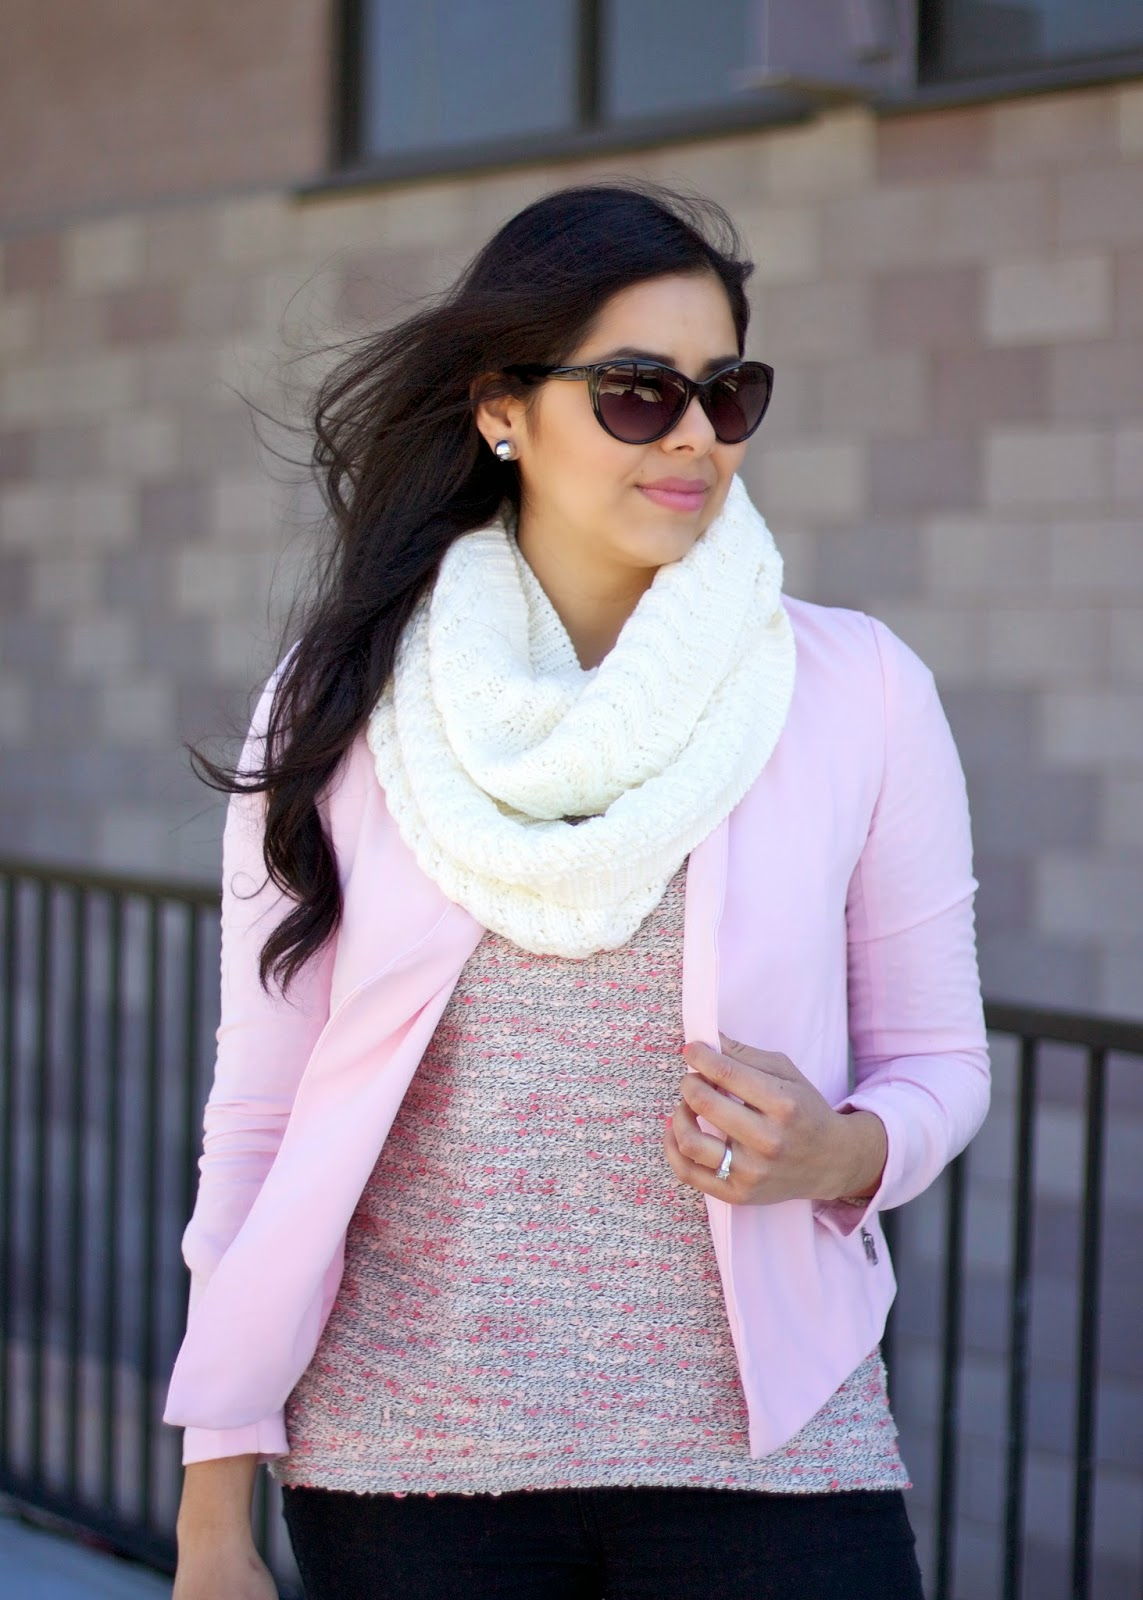 Chunky knit infinity scarf, how to wear a chunky knit infinity scarf, charming charlie scarf, forever 21 sunglasses, what to wear in san diego 2015